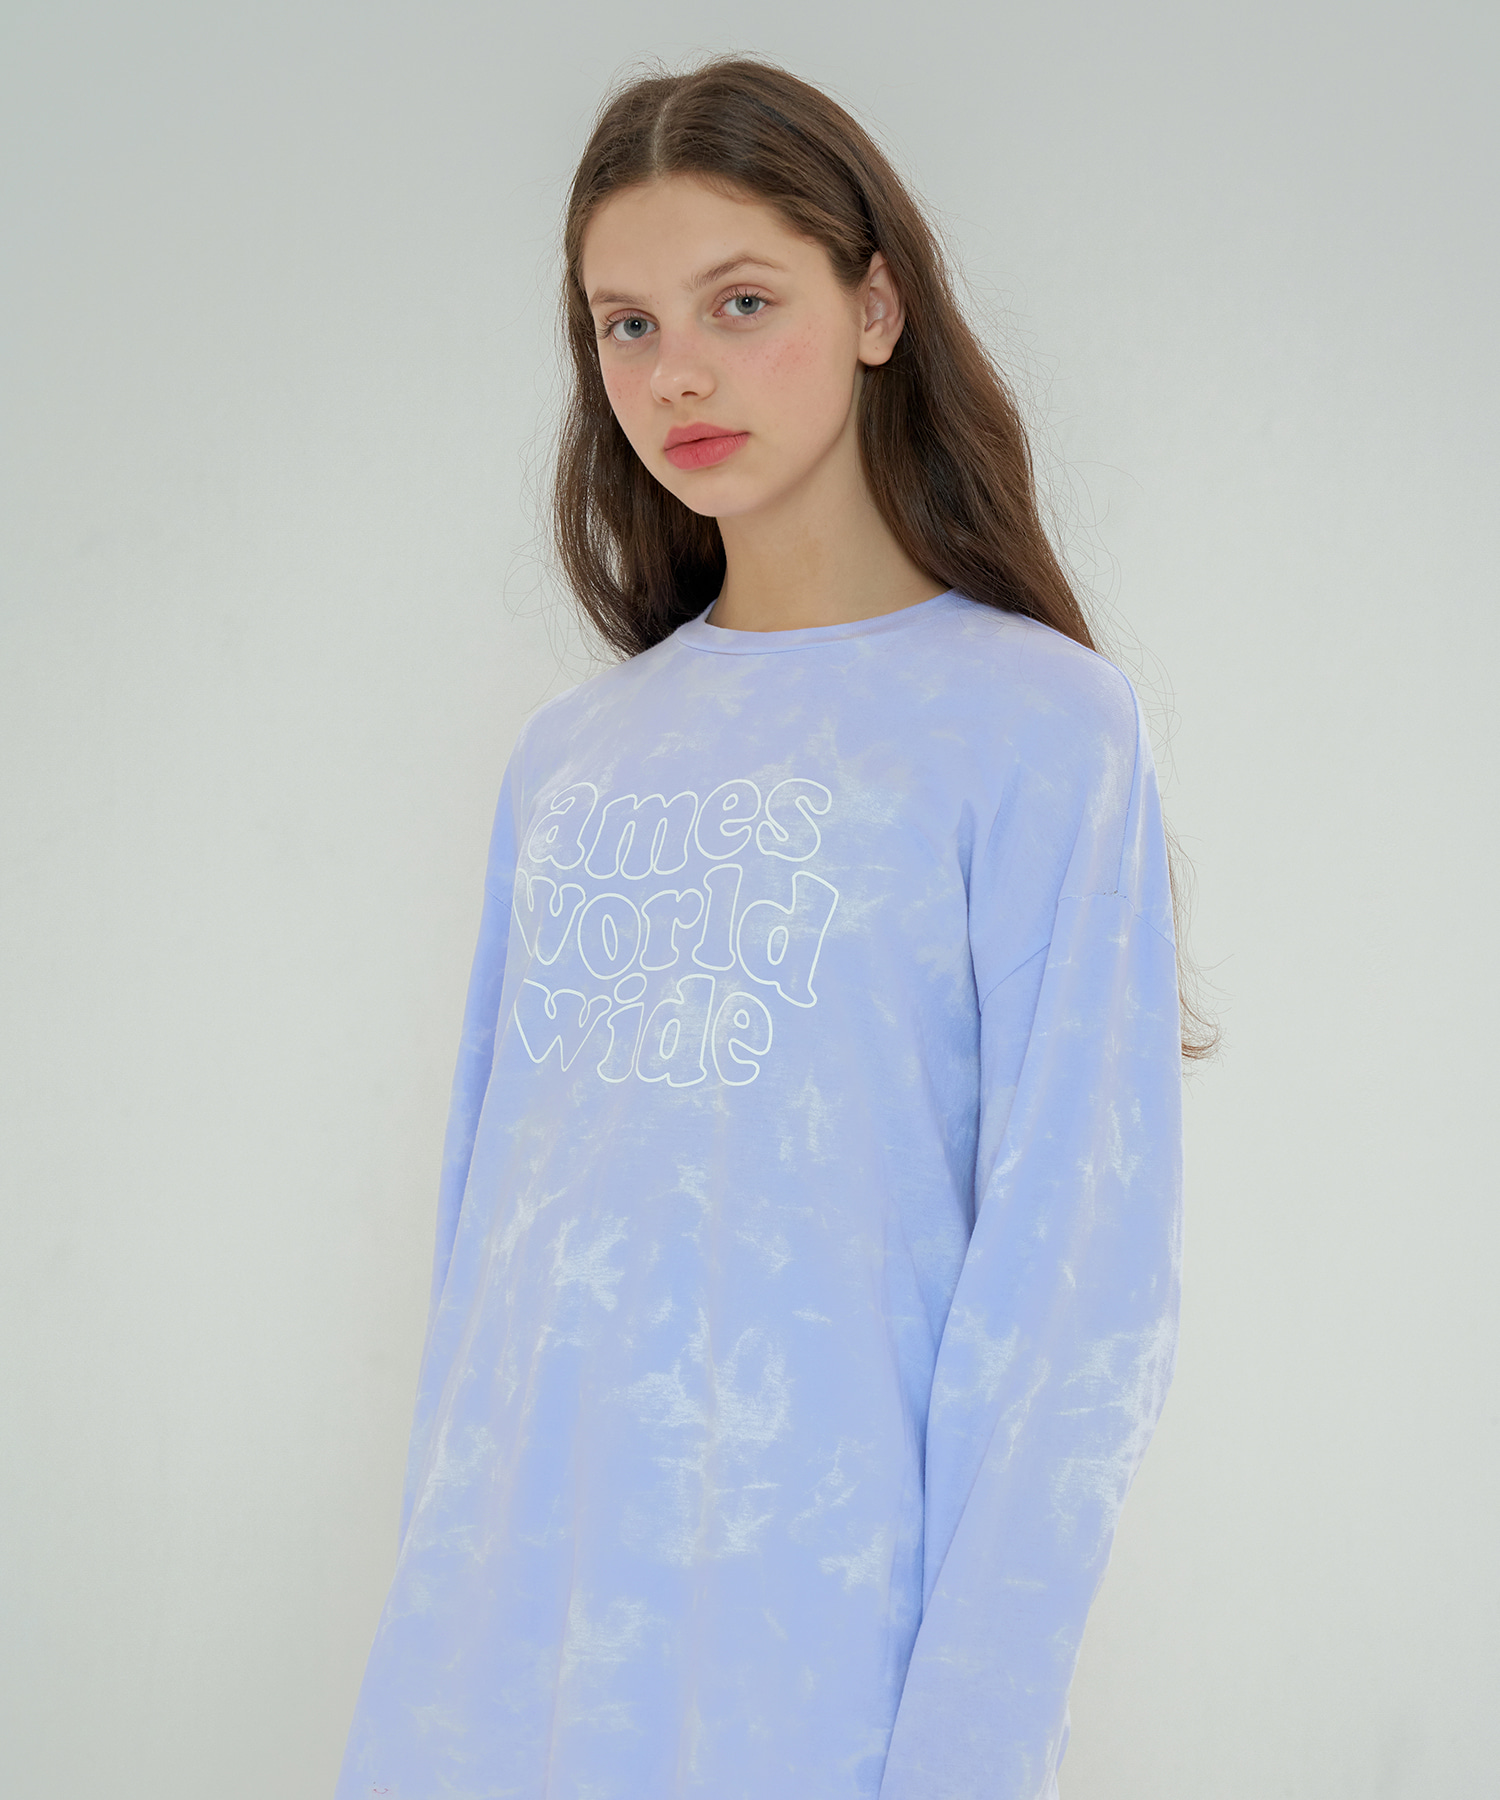 BUBBLE EMBLEM TYEDYE LONG SLEEVES_PP